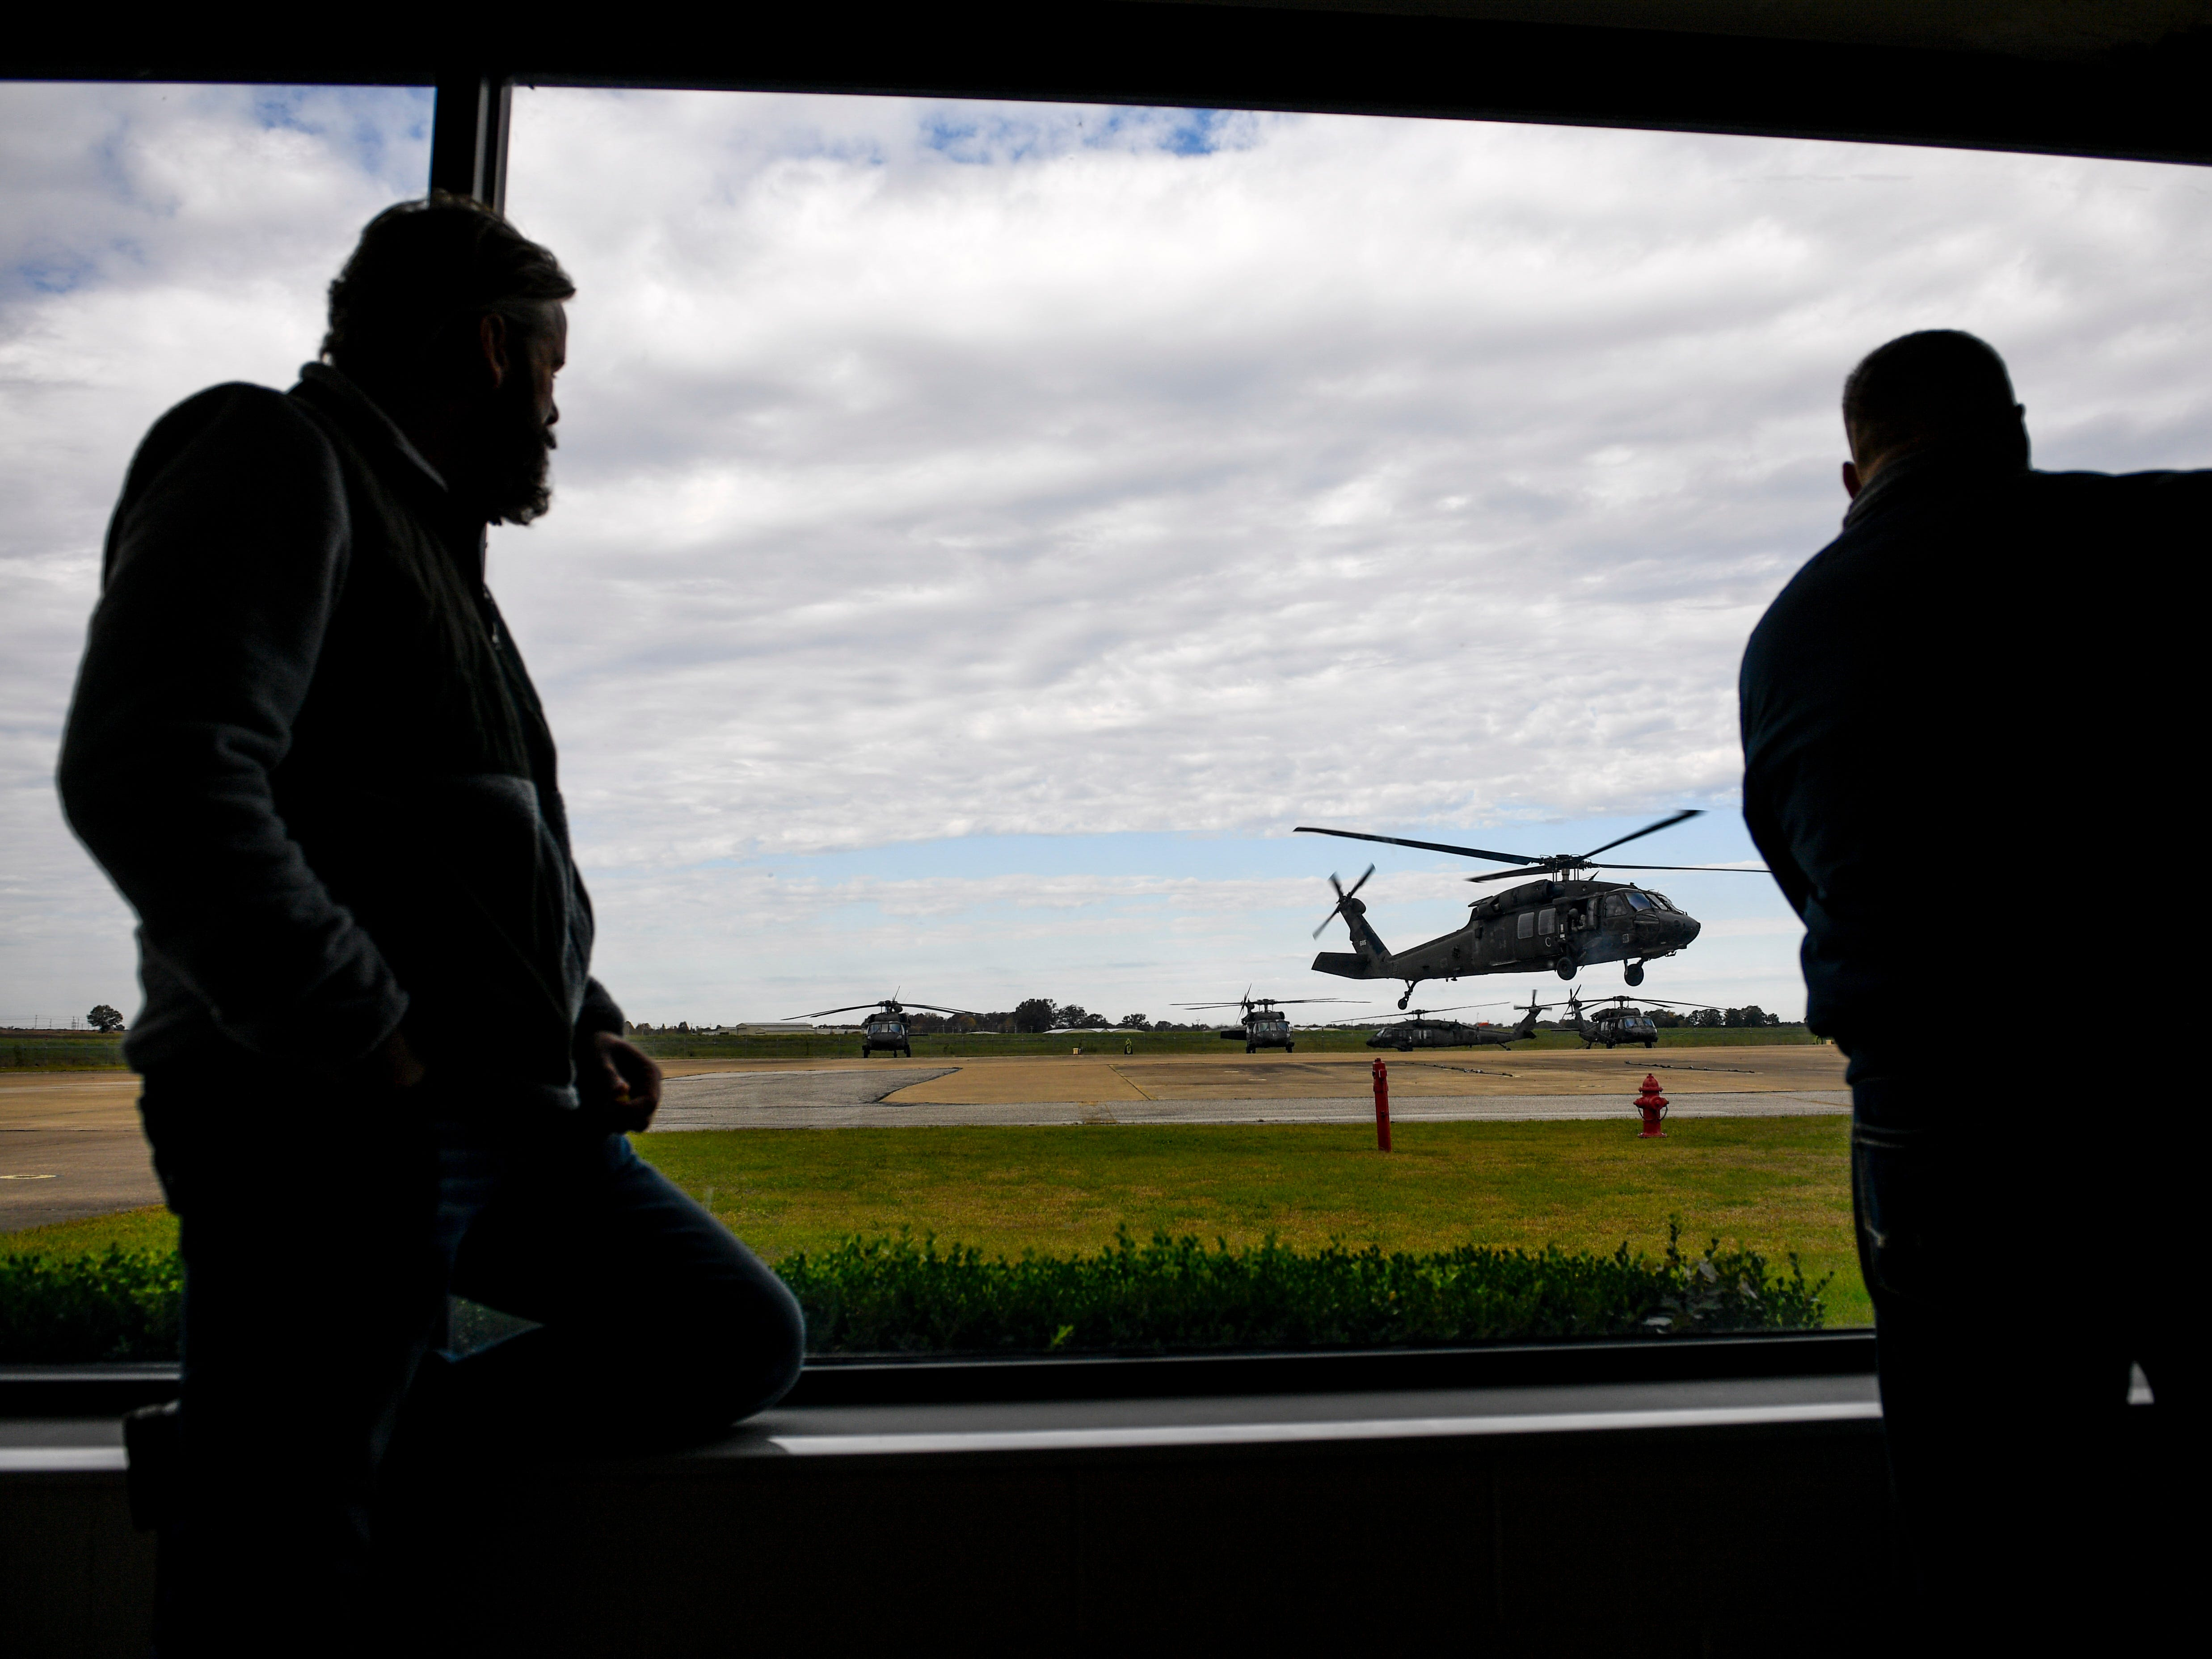 Attendees look out the windows of a building at National Guardsmen testing their helicopters during the annual Bosslift event put on by Employer Support of the Guard and Reserve (ESGR) and the Tennessee National Guard at Army Aviation Facility in Jackson, Tenn., on Thursday, Nov. 8, 2018.